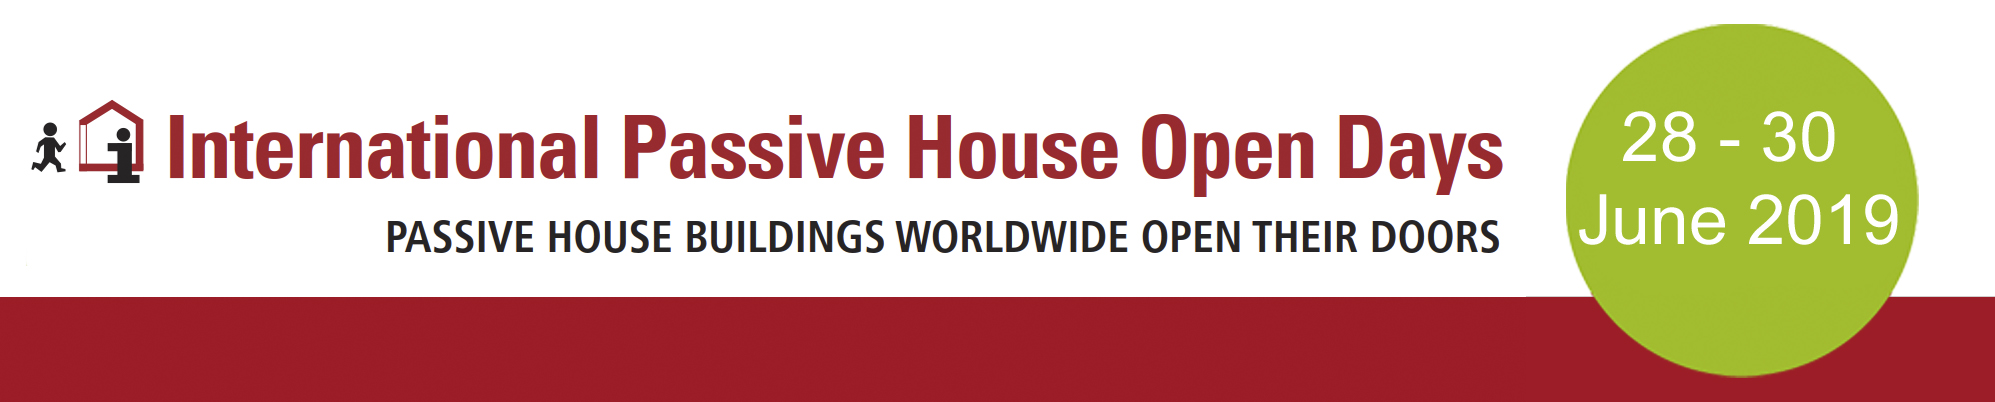 International Passivhaus Open Days - June 2019